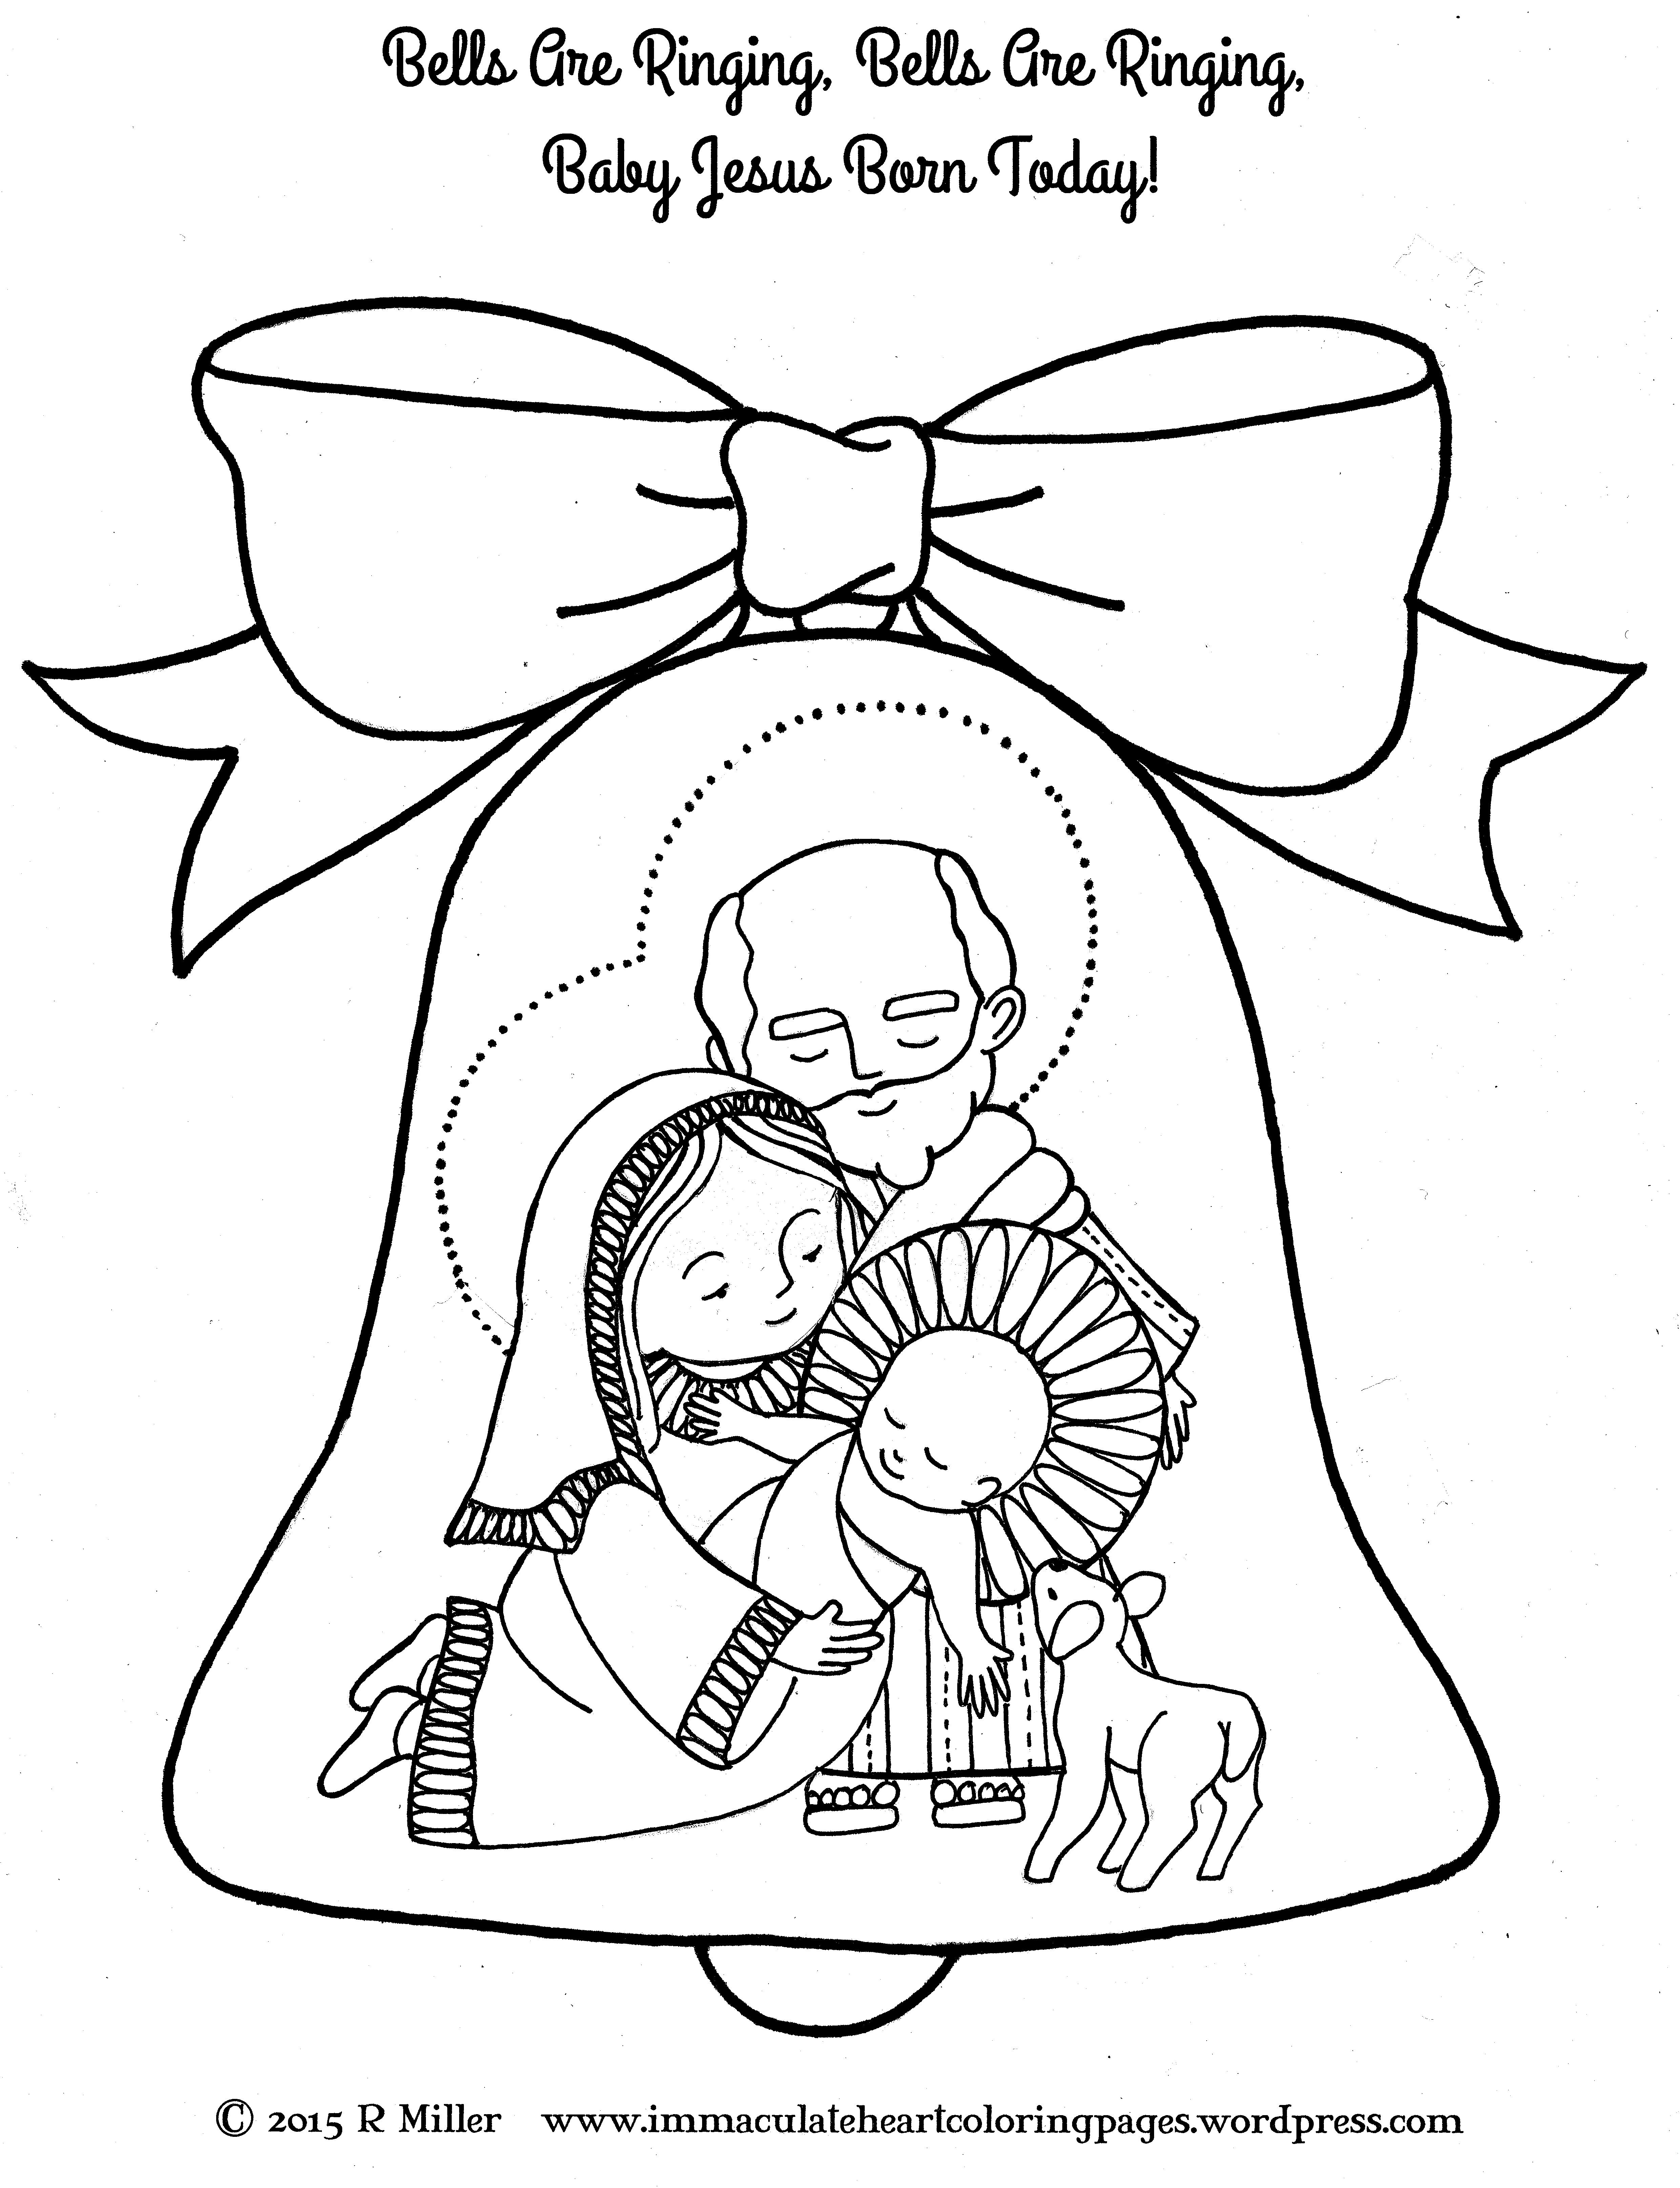 Bells Are Ringing Nativity Christmas Coloring Page from the song ...